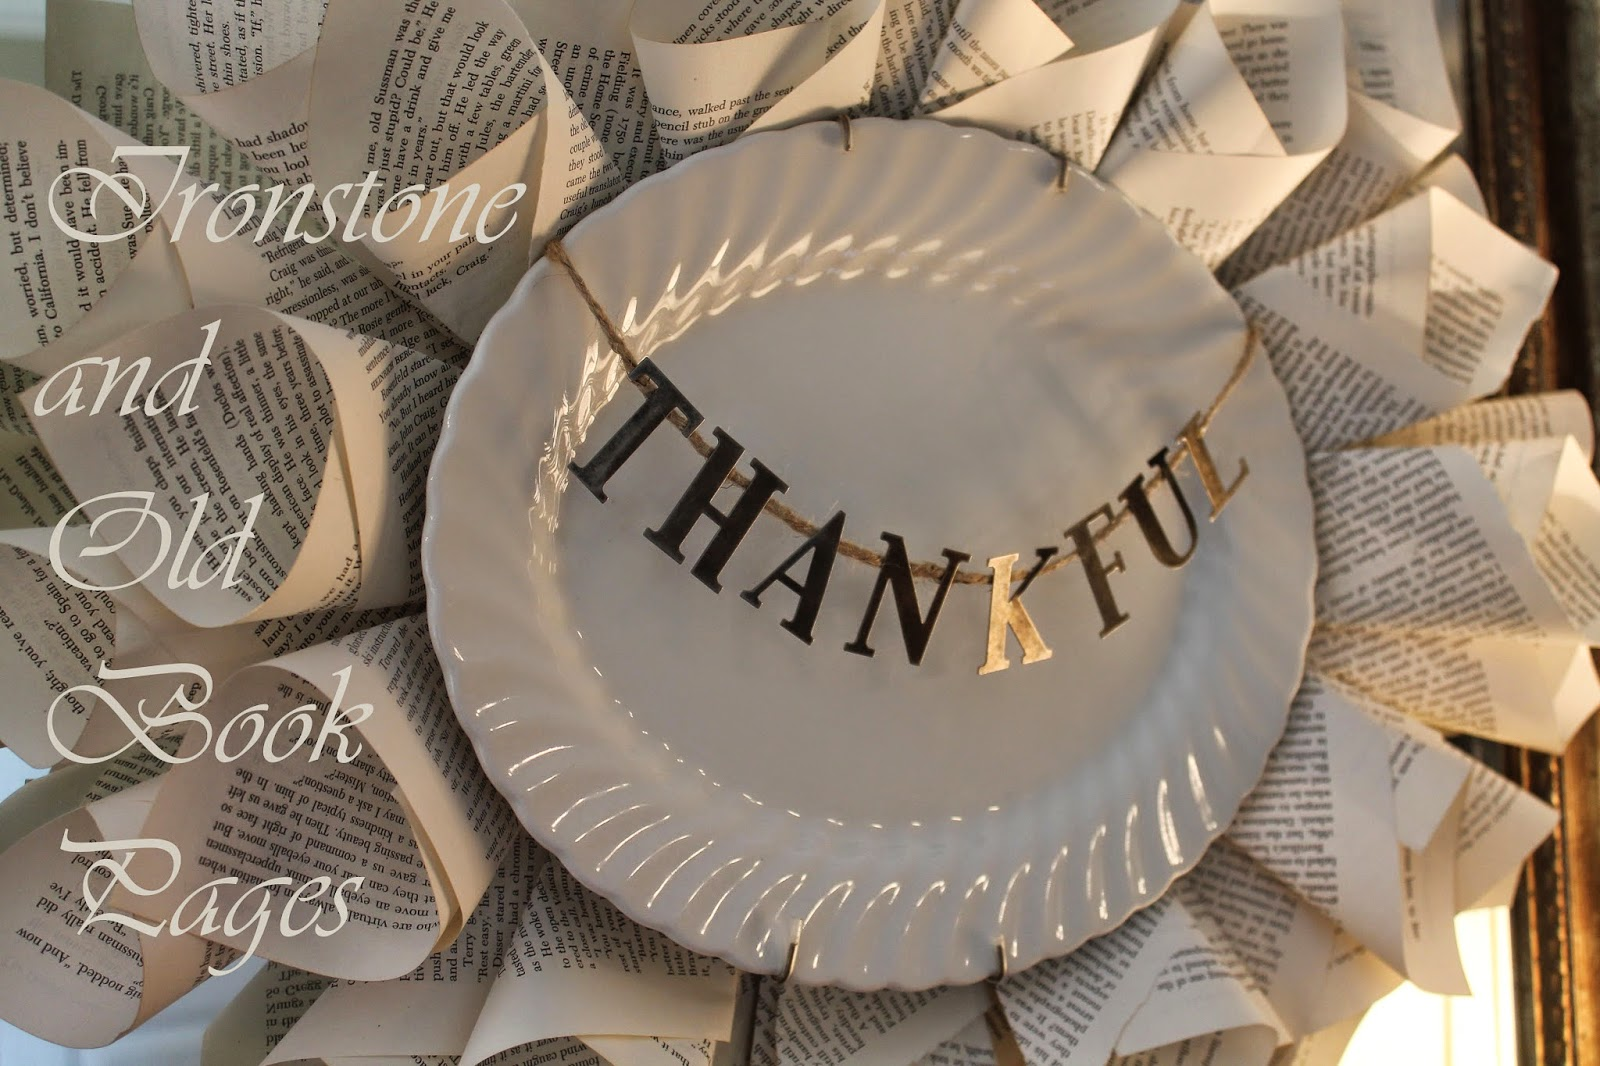 thankful, platter, ironstone, book pages